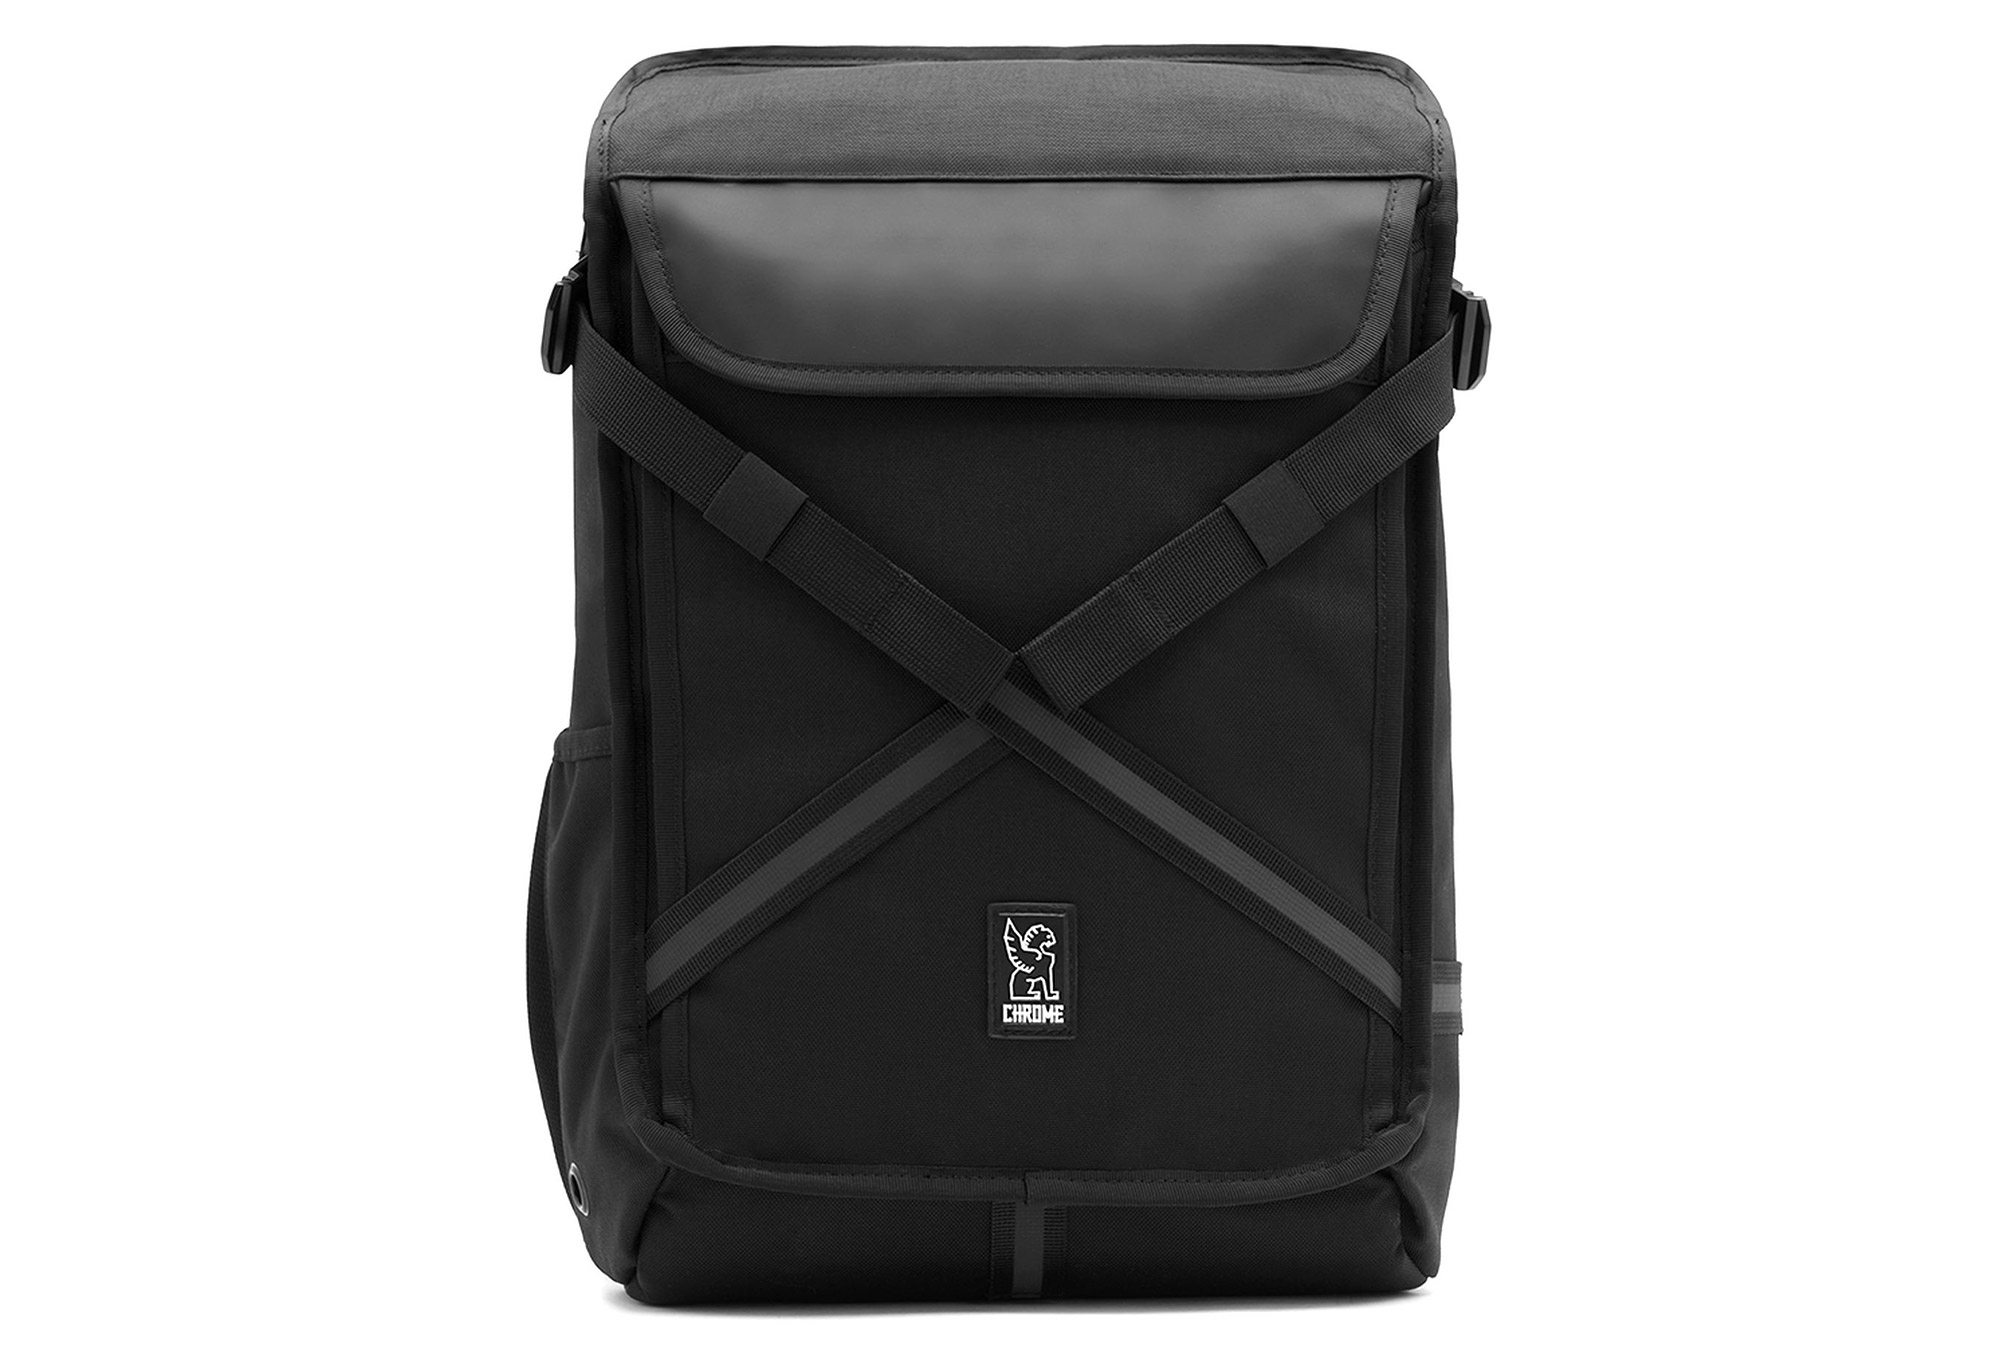 Chrome Bags BRAVO 2.0 Backpack AUTHENTIC Rolltop 28L Pack 1050D Camo Nylon New